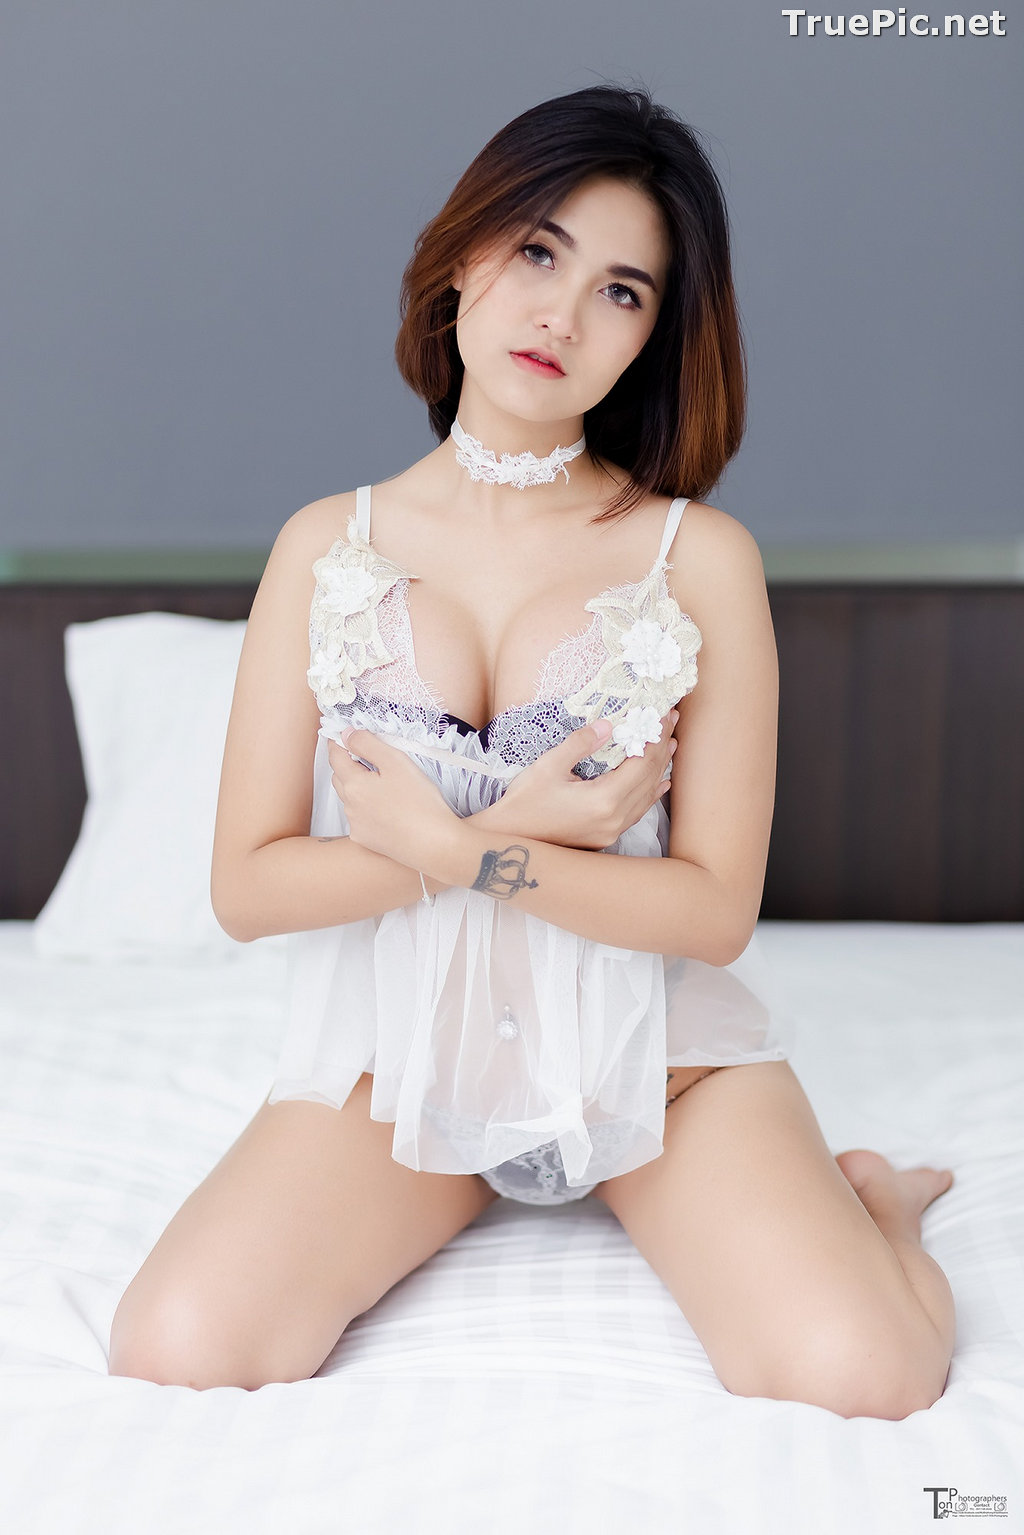 Image Thailand Sexy Model - Witsutar Ruechar - Beautiful Young Lady - TruePic.net - Picture-7